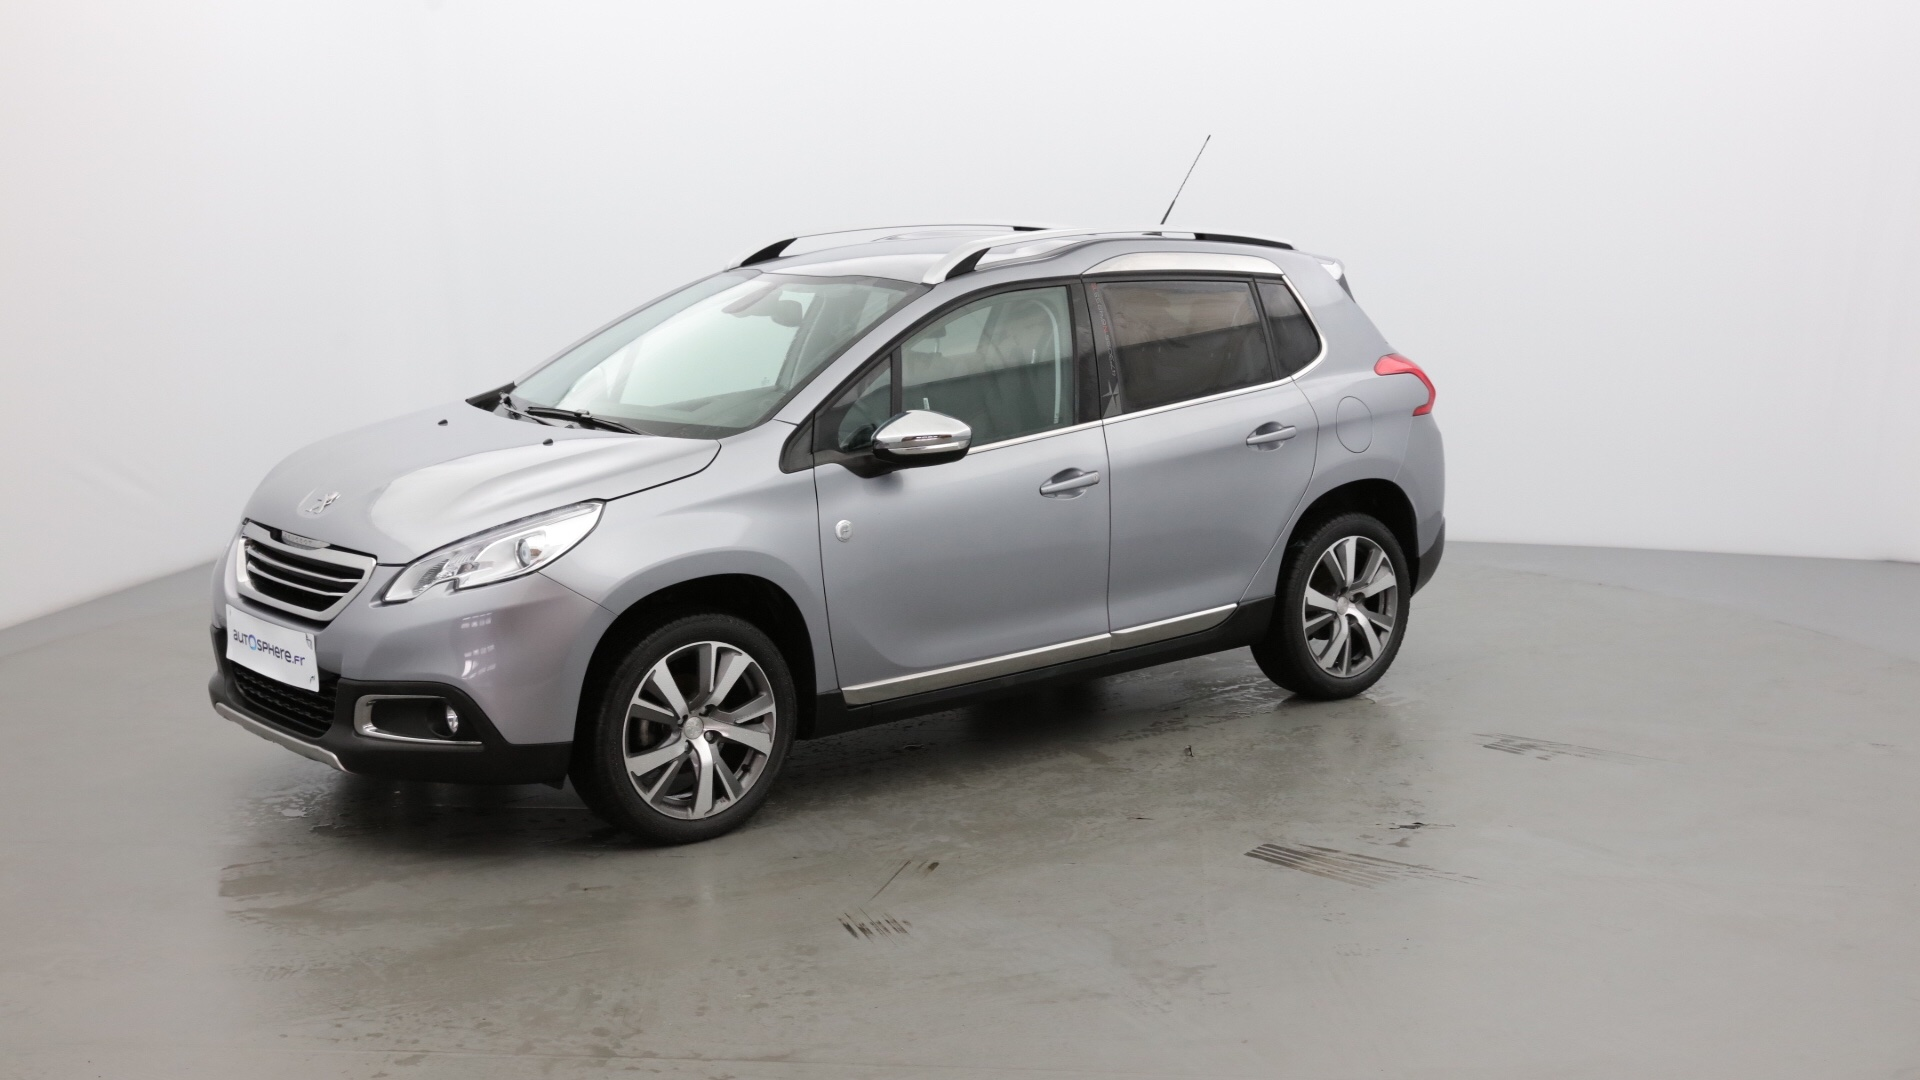 PEUGEOT 2008 1.6 BLUEHDI 100CH CROSSWAY S&S - Photo 1